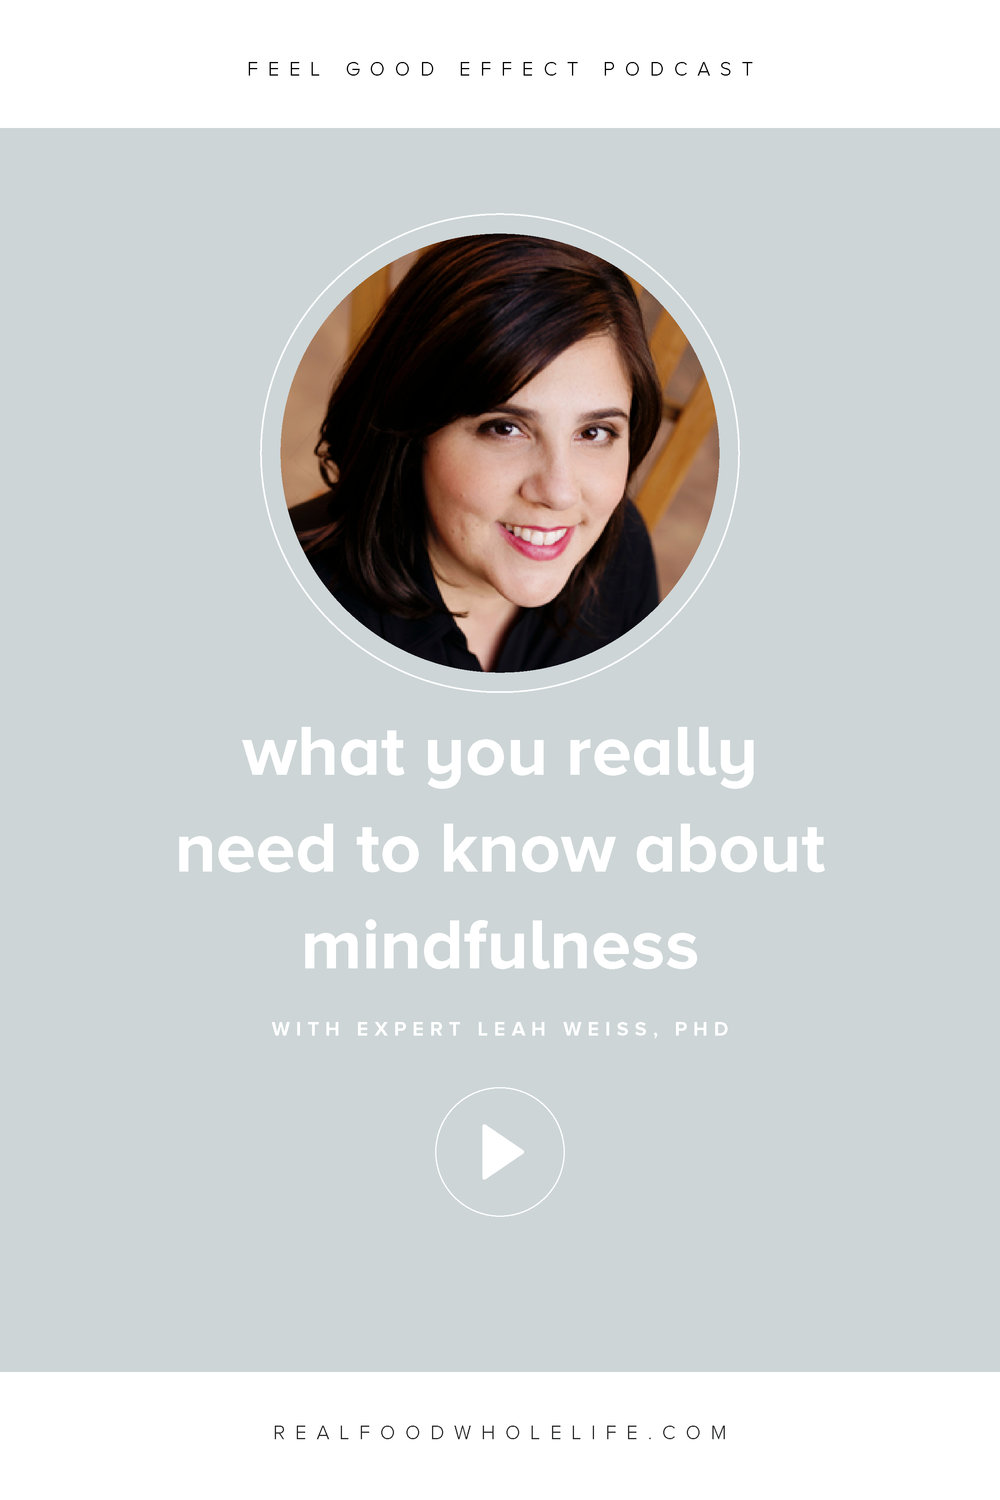 Mindfulness tips and strategies for real life and the workplace with mindfulness expert, Dr. Leah Weiss.  An interview on the Feel Good Effect podcast.